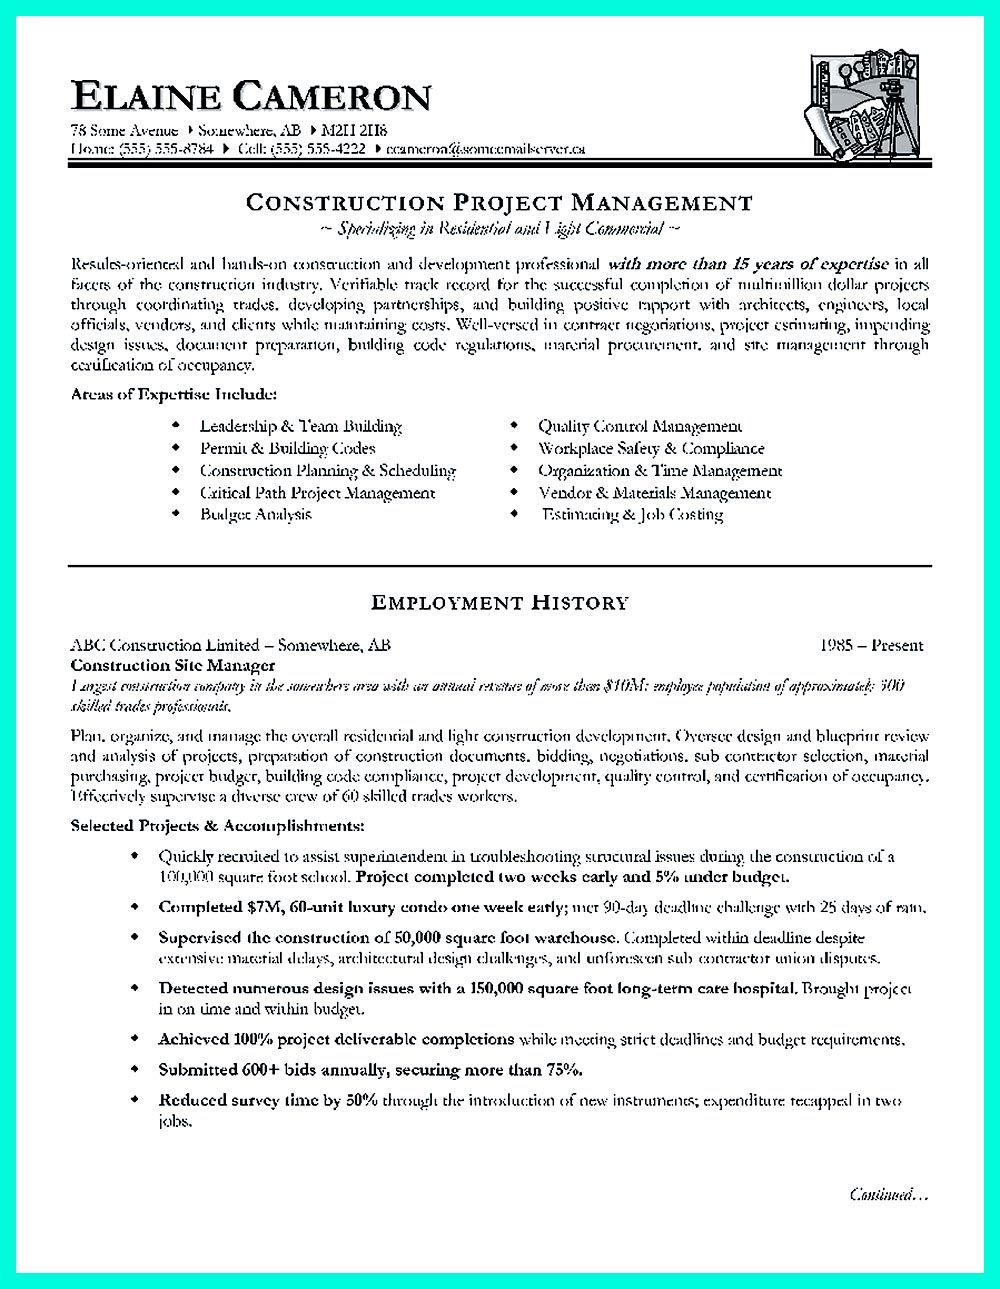 construction project manager resume for experienced one must be made with professional profile education - Construction Project Manager Resume Examples